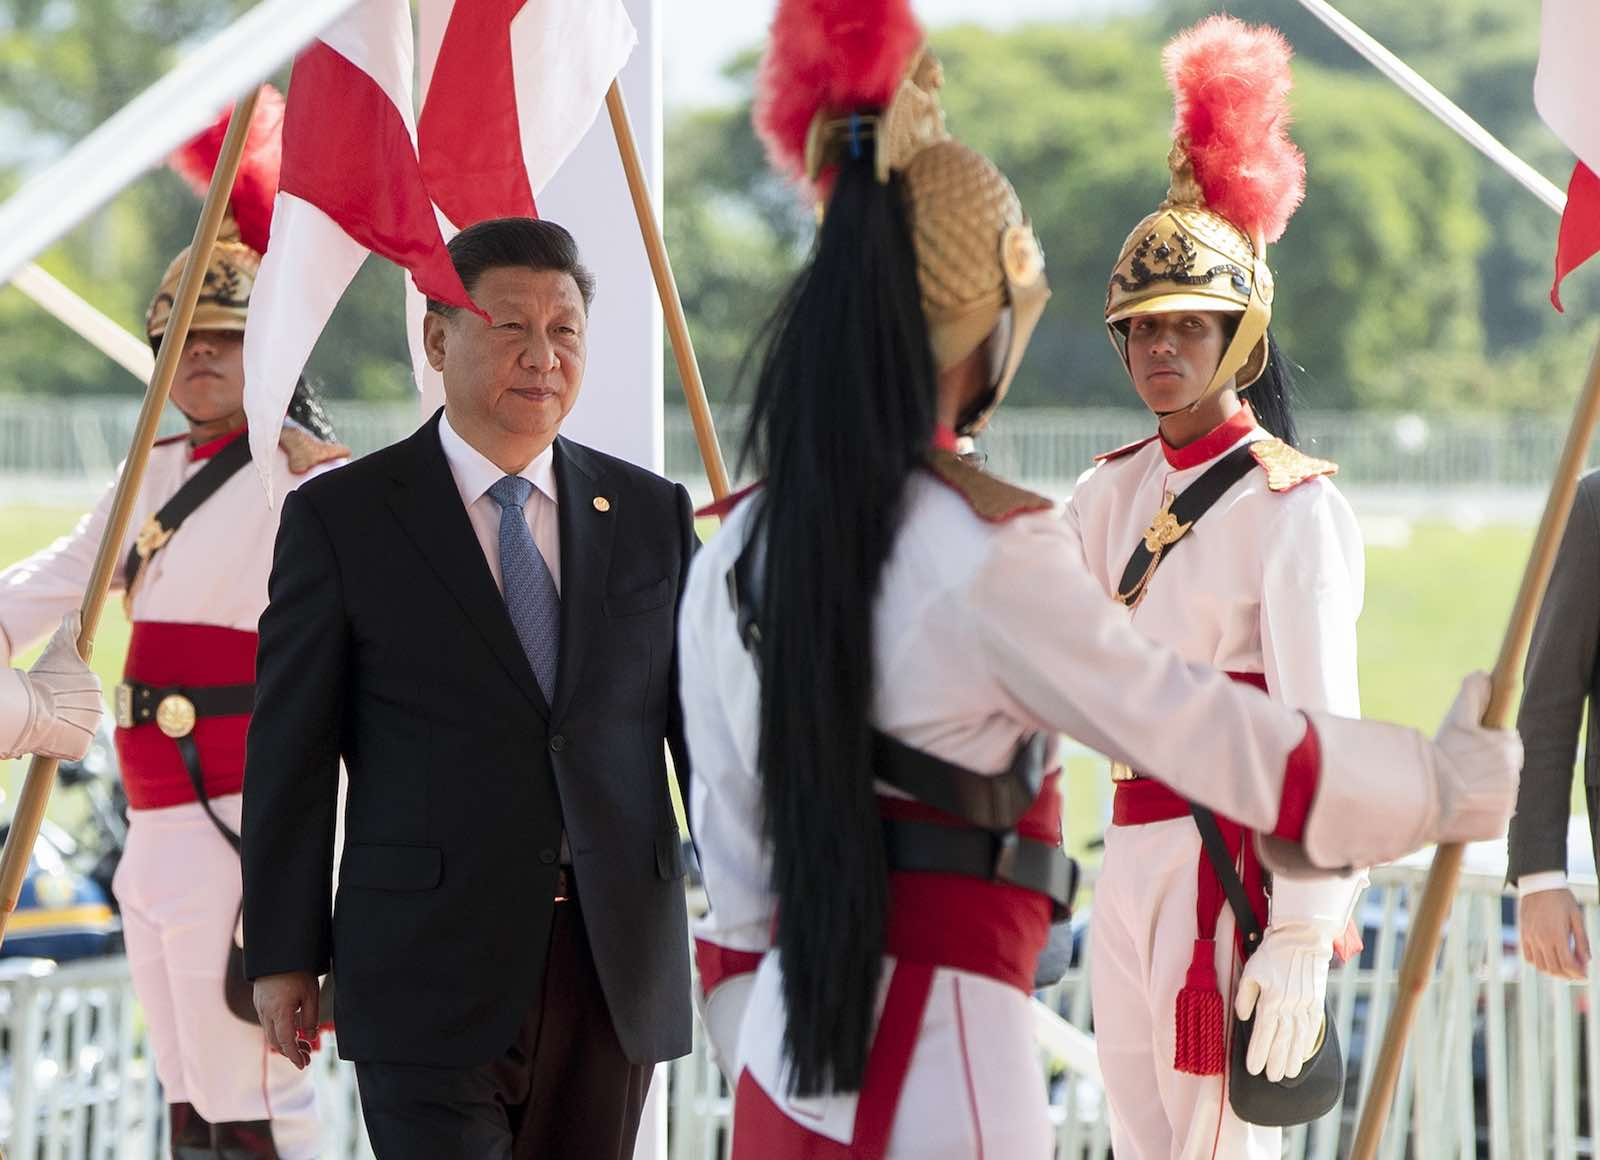 Chinese President Xi Jinping attending the BRICS summit in Brasilia, Brazil, October 2019 (Photo: Pavel Golovkin/AFP via Getty)